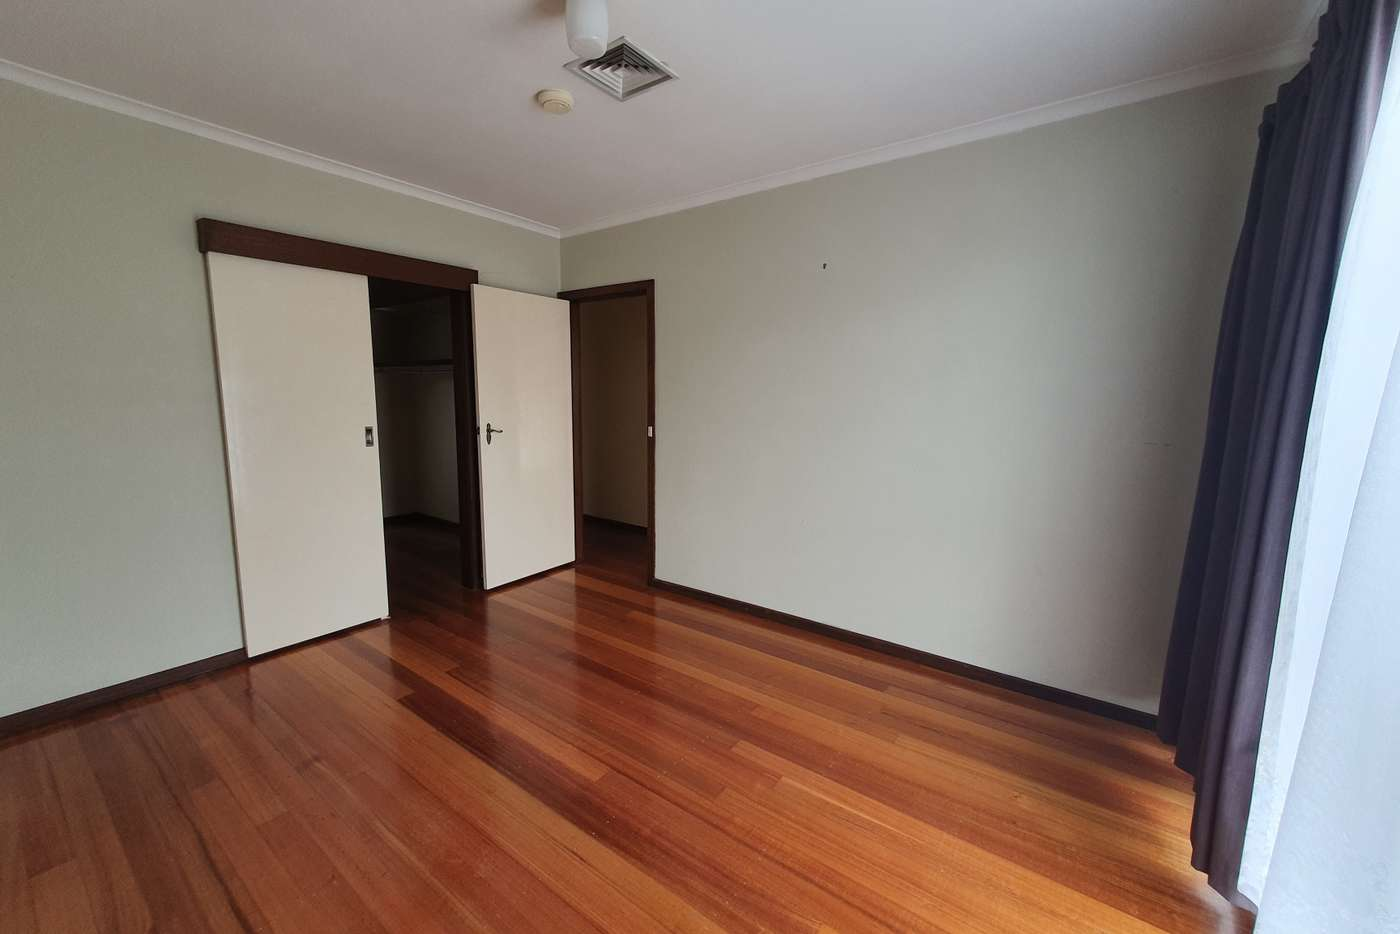 Sixth view of Homely house listing, 15 Chapel  Street, Glen Waverley VIC 3150